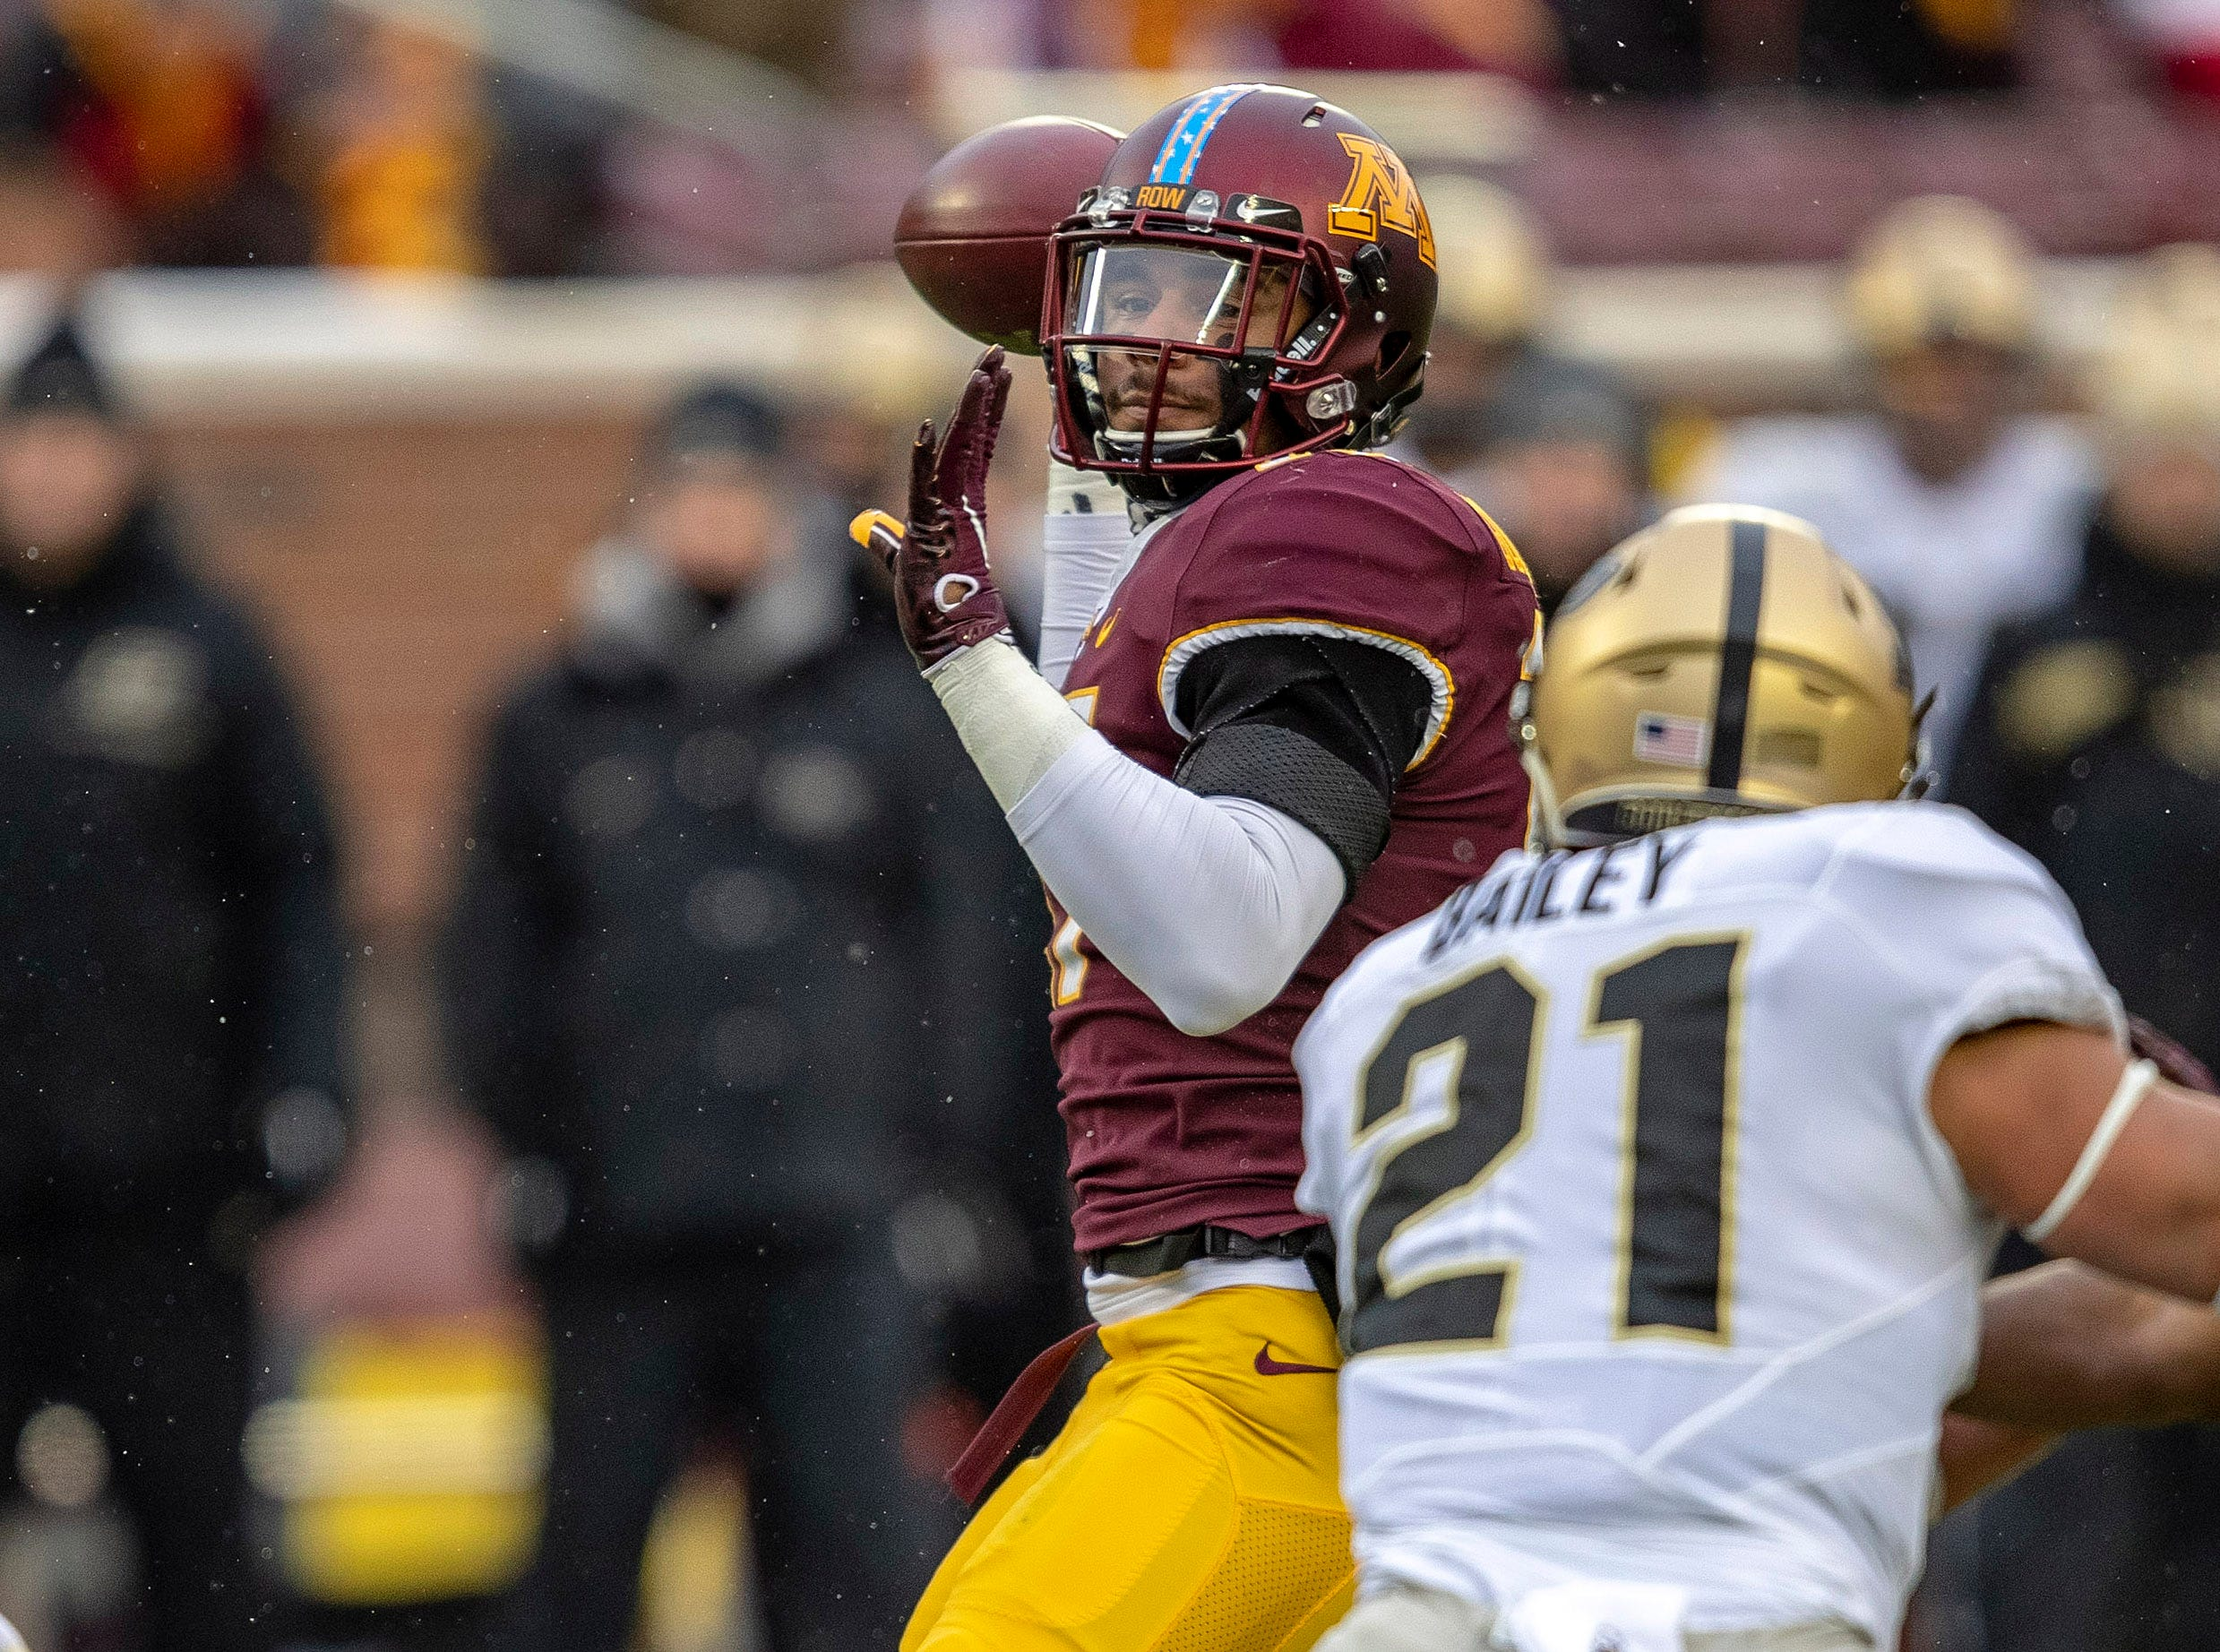 Nov 10, 2018; Minneapolis, MN, USA; Minnesota Golden Gophers wide receiver Seth Green (17) drops back and throws a touchdown pass in the first half against the Purdue Boilermakers at TCF Bank Stadium. Mandatory Credit: Jesse Johnson-USA TODAY Sports